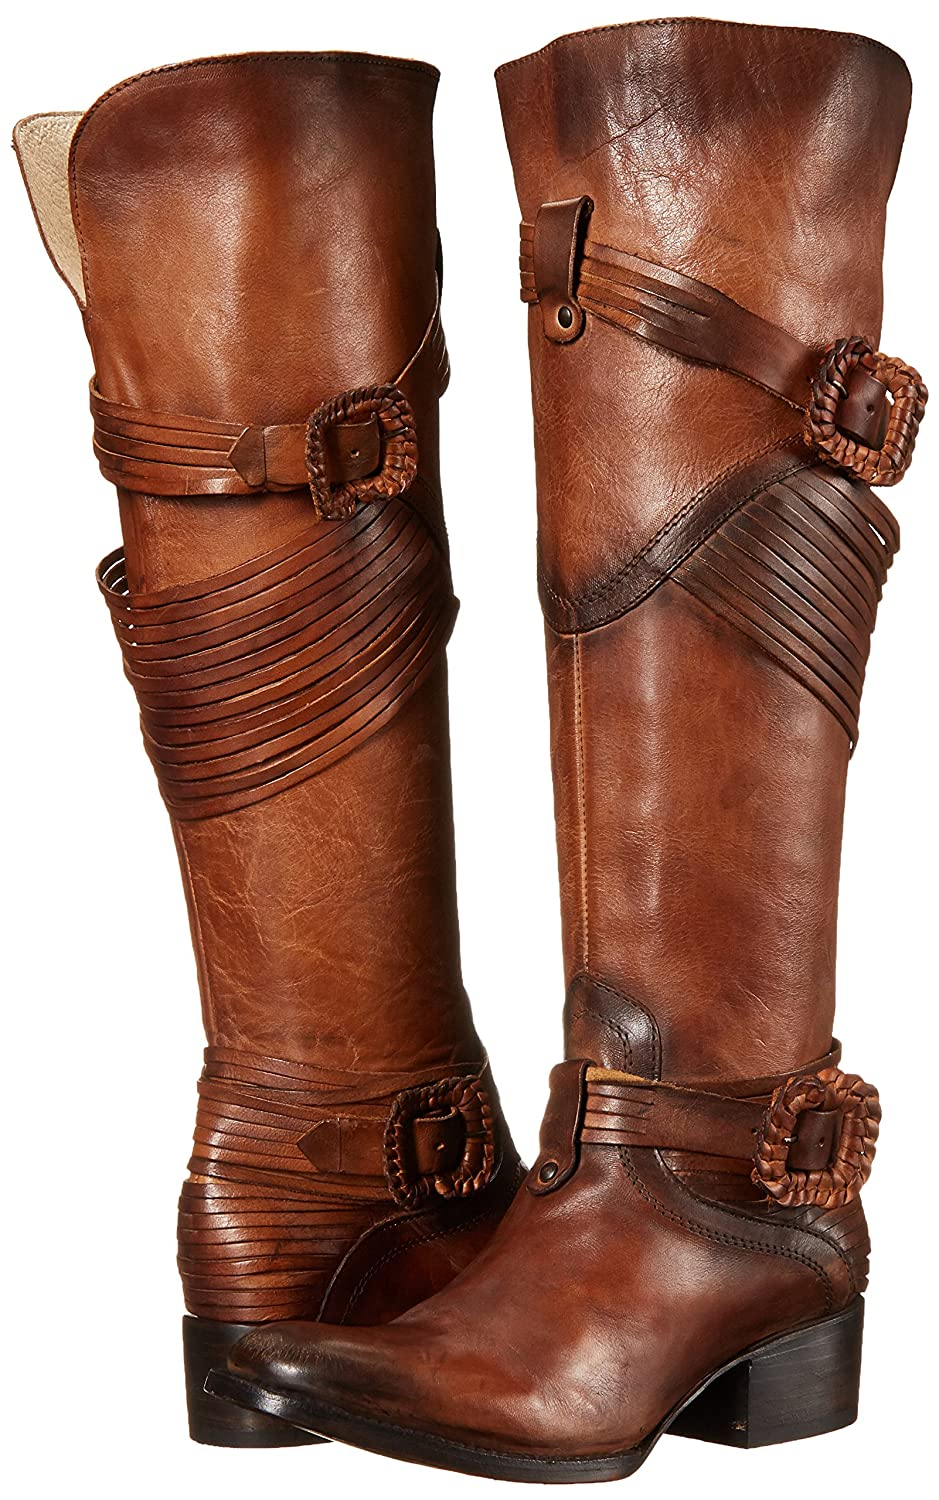 Deluxe Adult Costumes - Assassin's Creed: The Movie Women's Stela Harness Brown Leather Buckle Boots